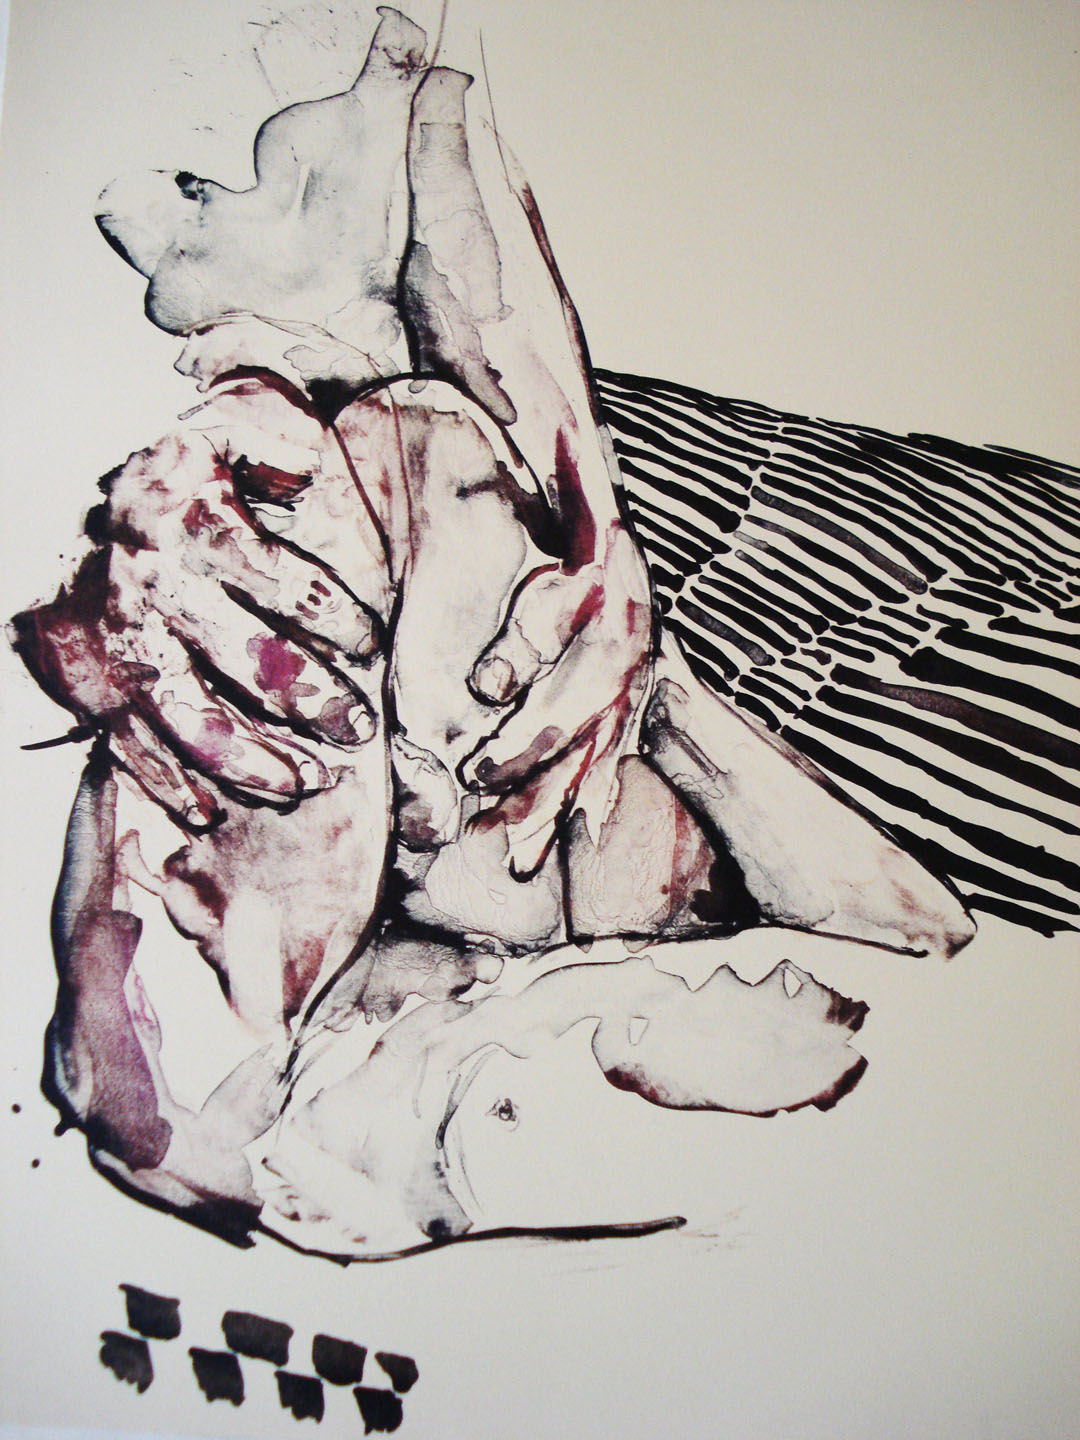 Penal Code 269 a and b #3;2007    Reductive Stone Lithograph, 18 x 15 in